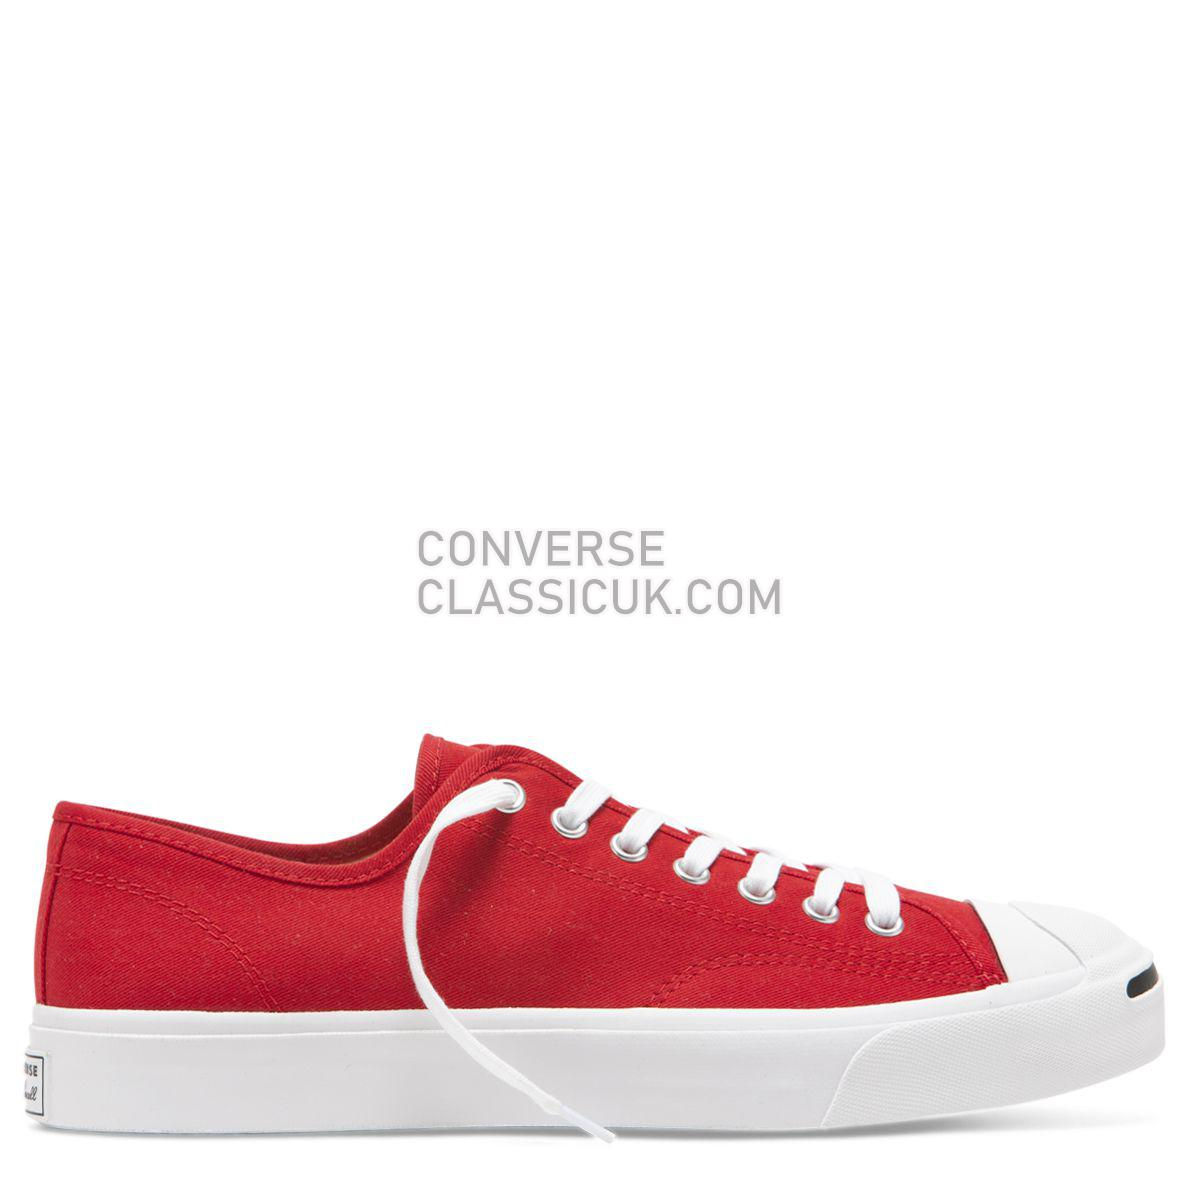 Converse Jack Purcell Twill Low Top Enamel Red Mens 165010 Enamel Red/White/Black Shoes